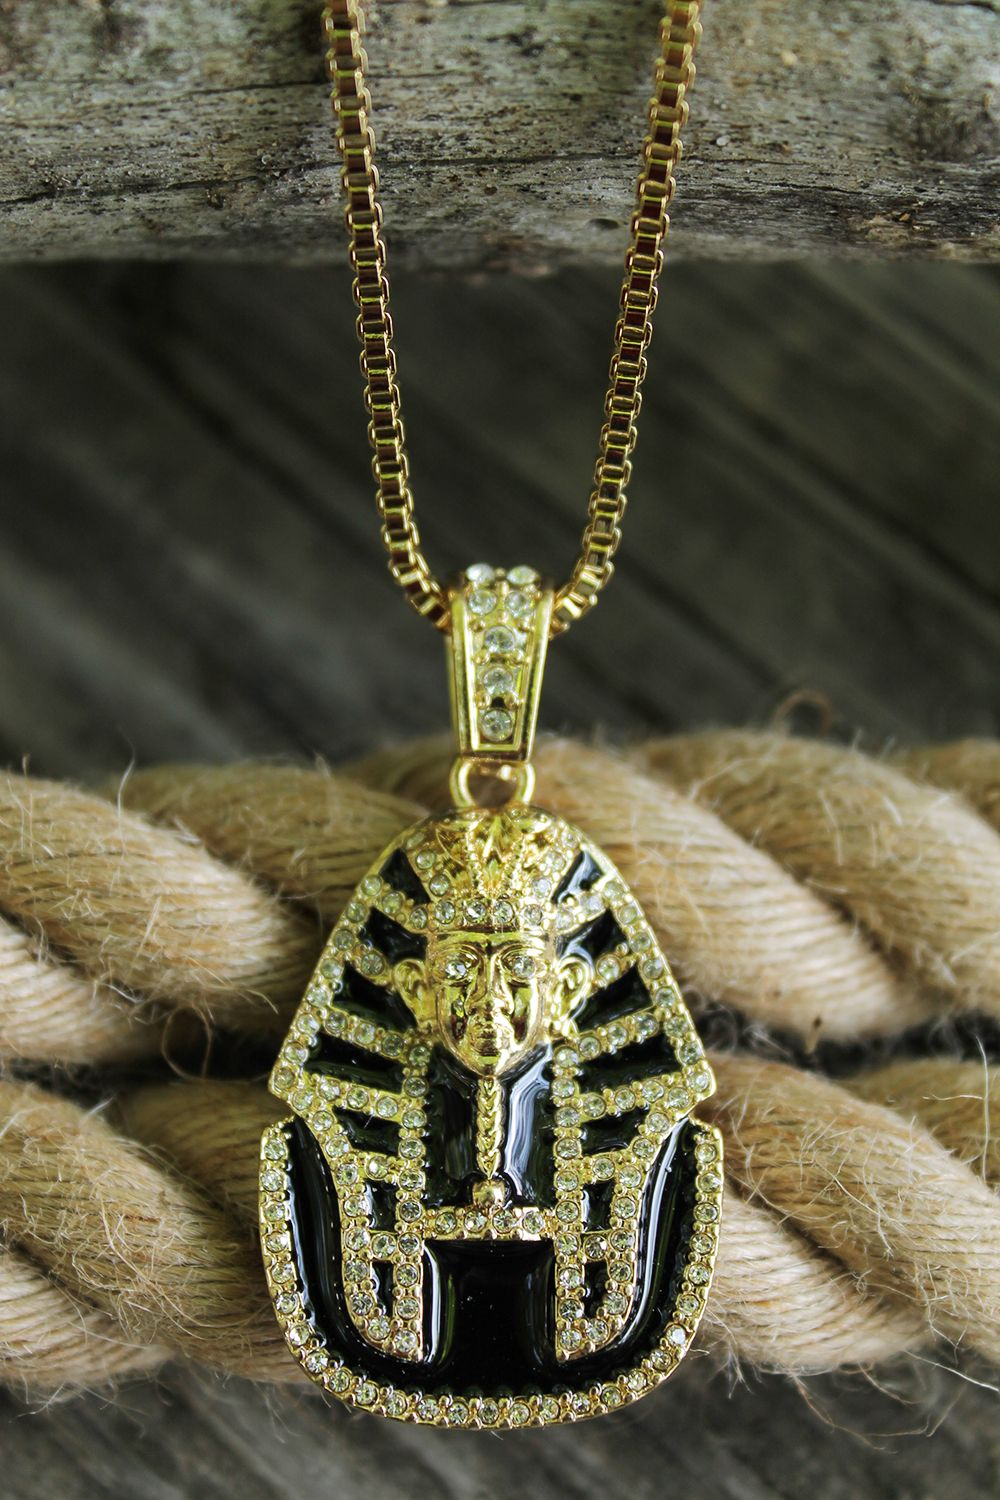 Iced out king tut pendant 24 boxropecuban chain hip hop gorgeous sparkle pendant necklace iced out king tut pendant 24 boxrope aloadofball Gallery